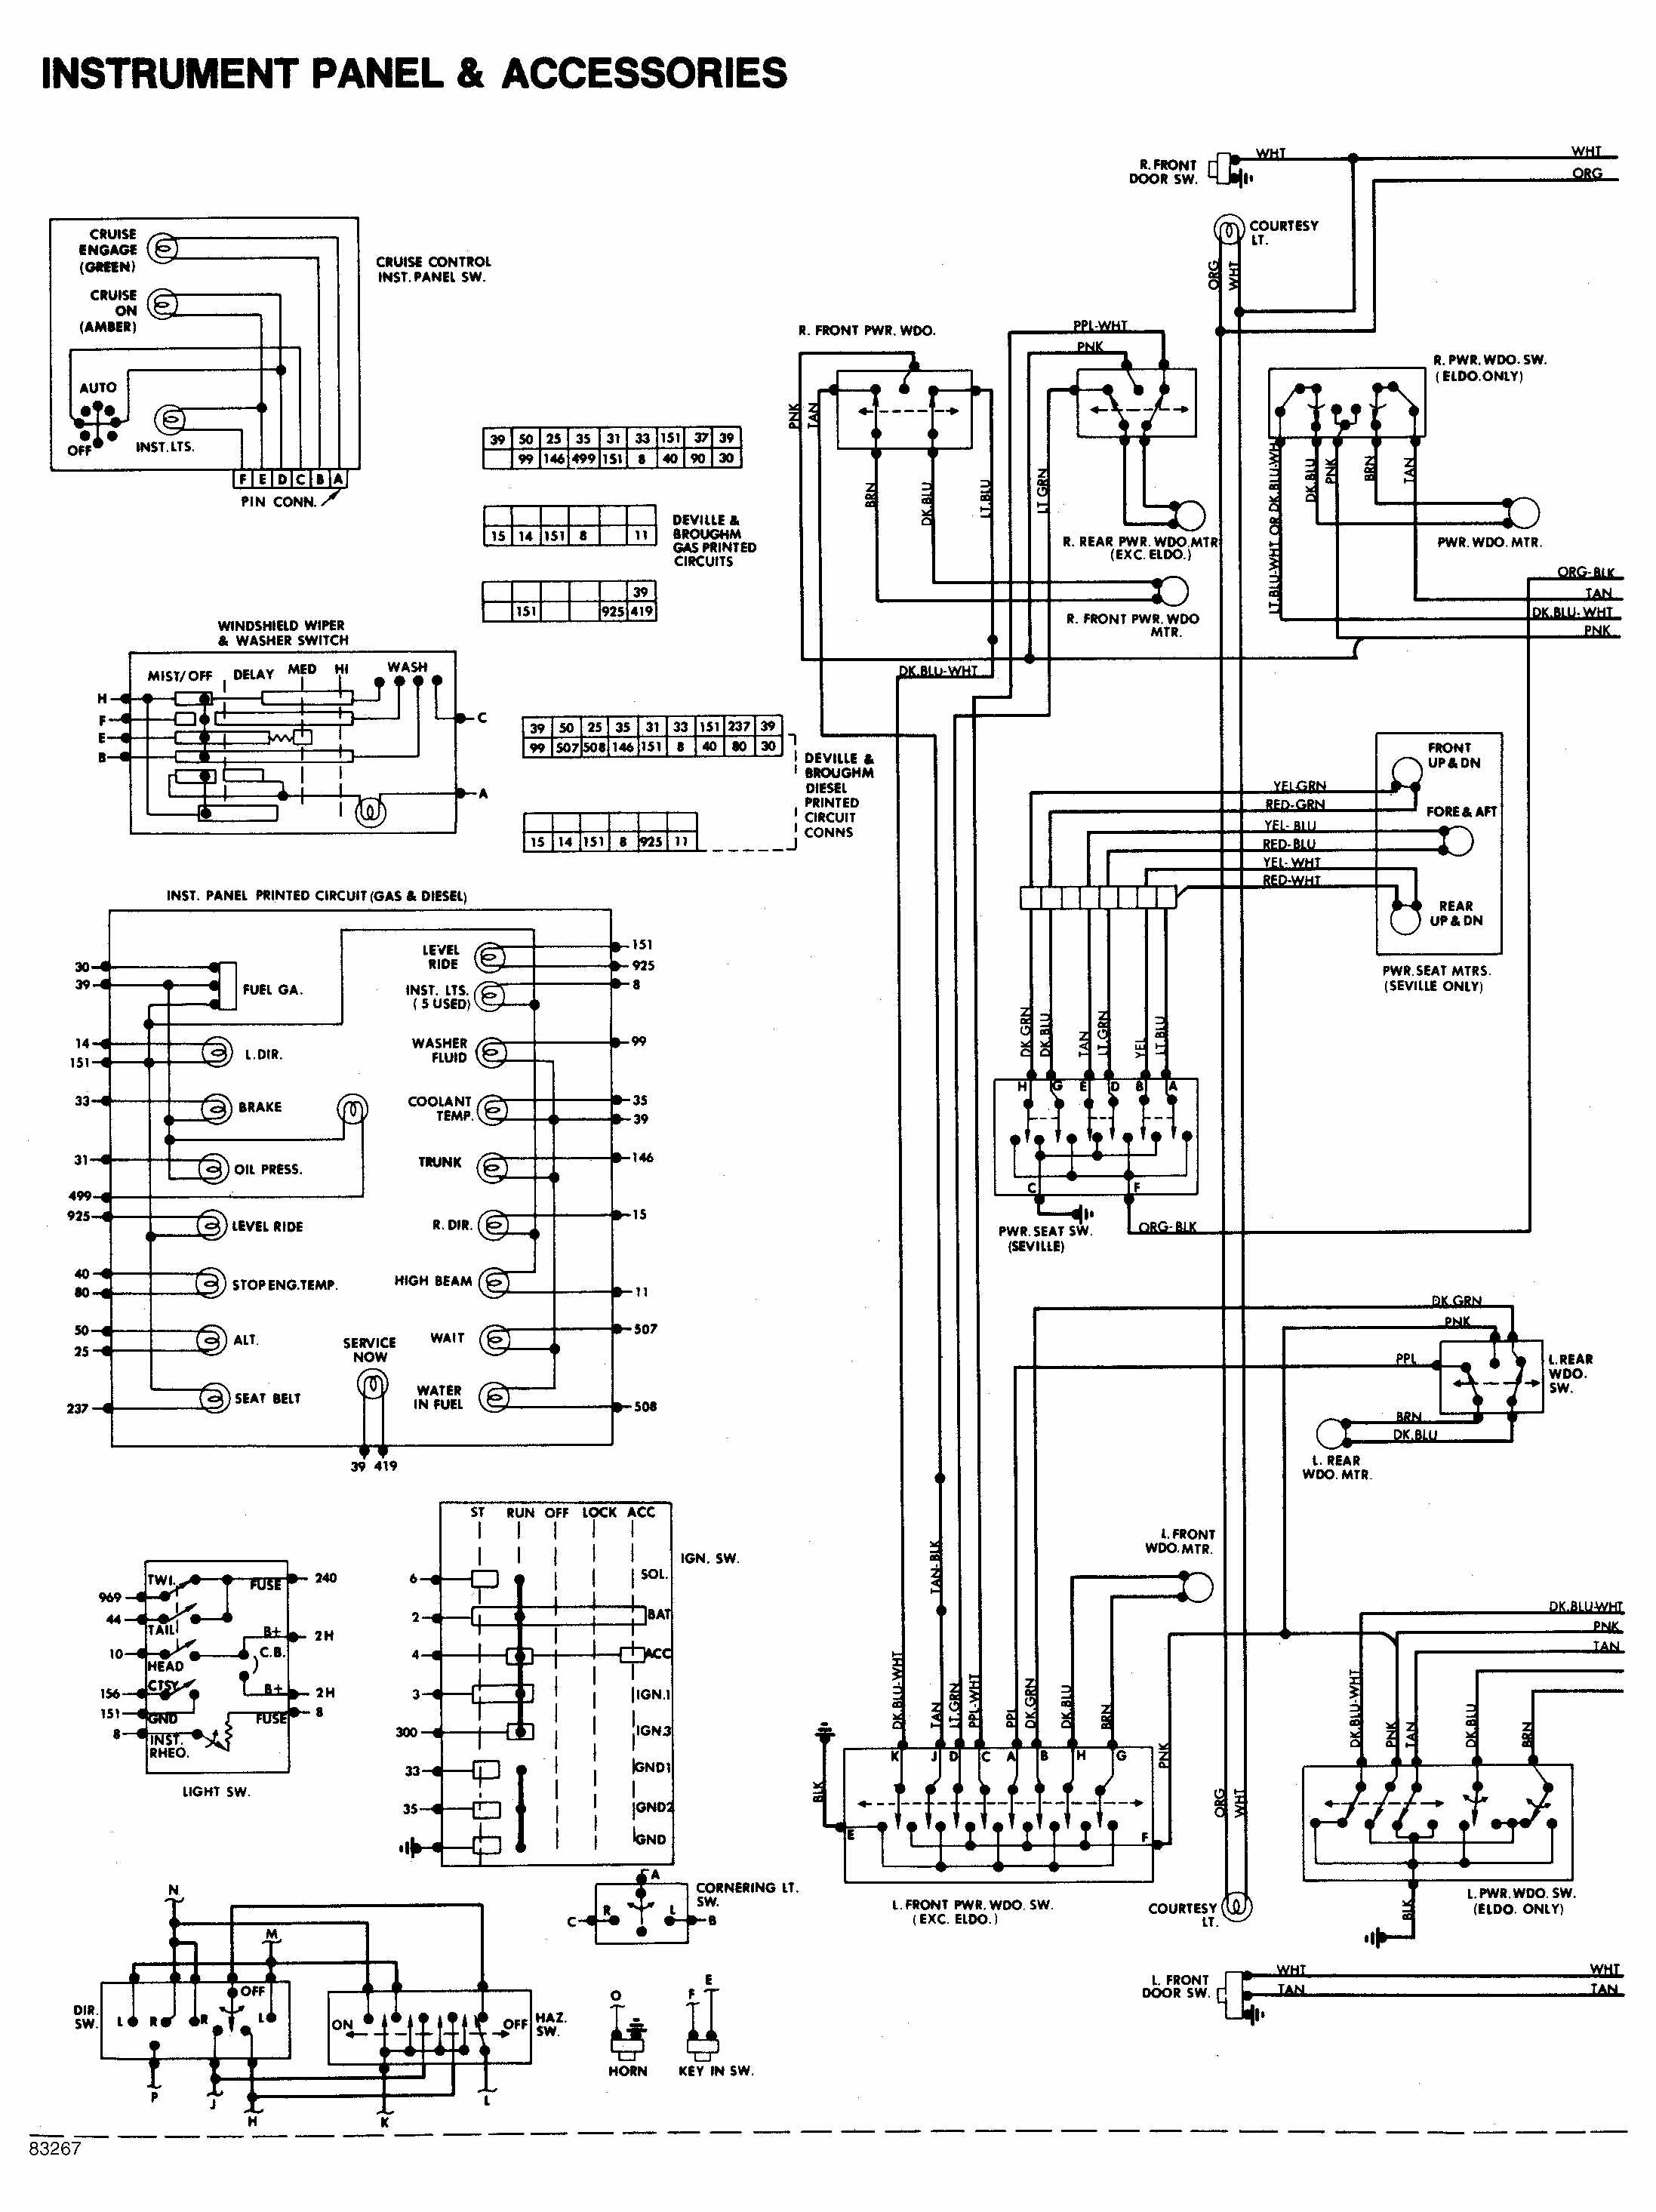 Instrument Panel And Accessories Wiring Diagram Of Cadillac Deville